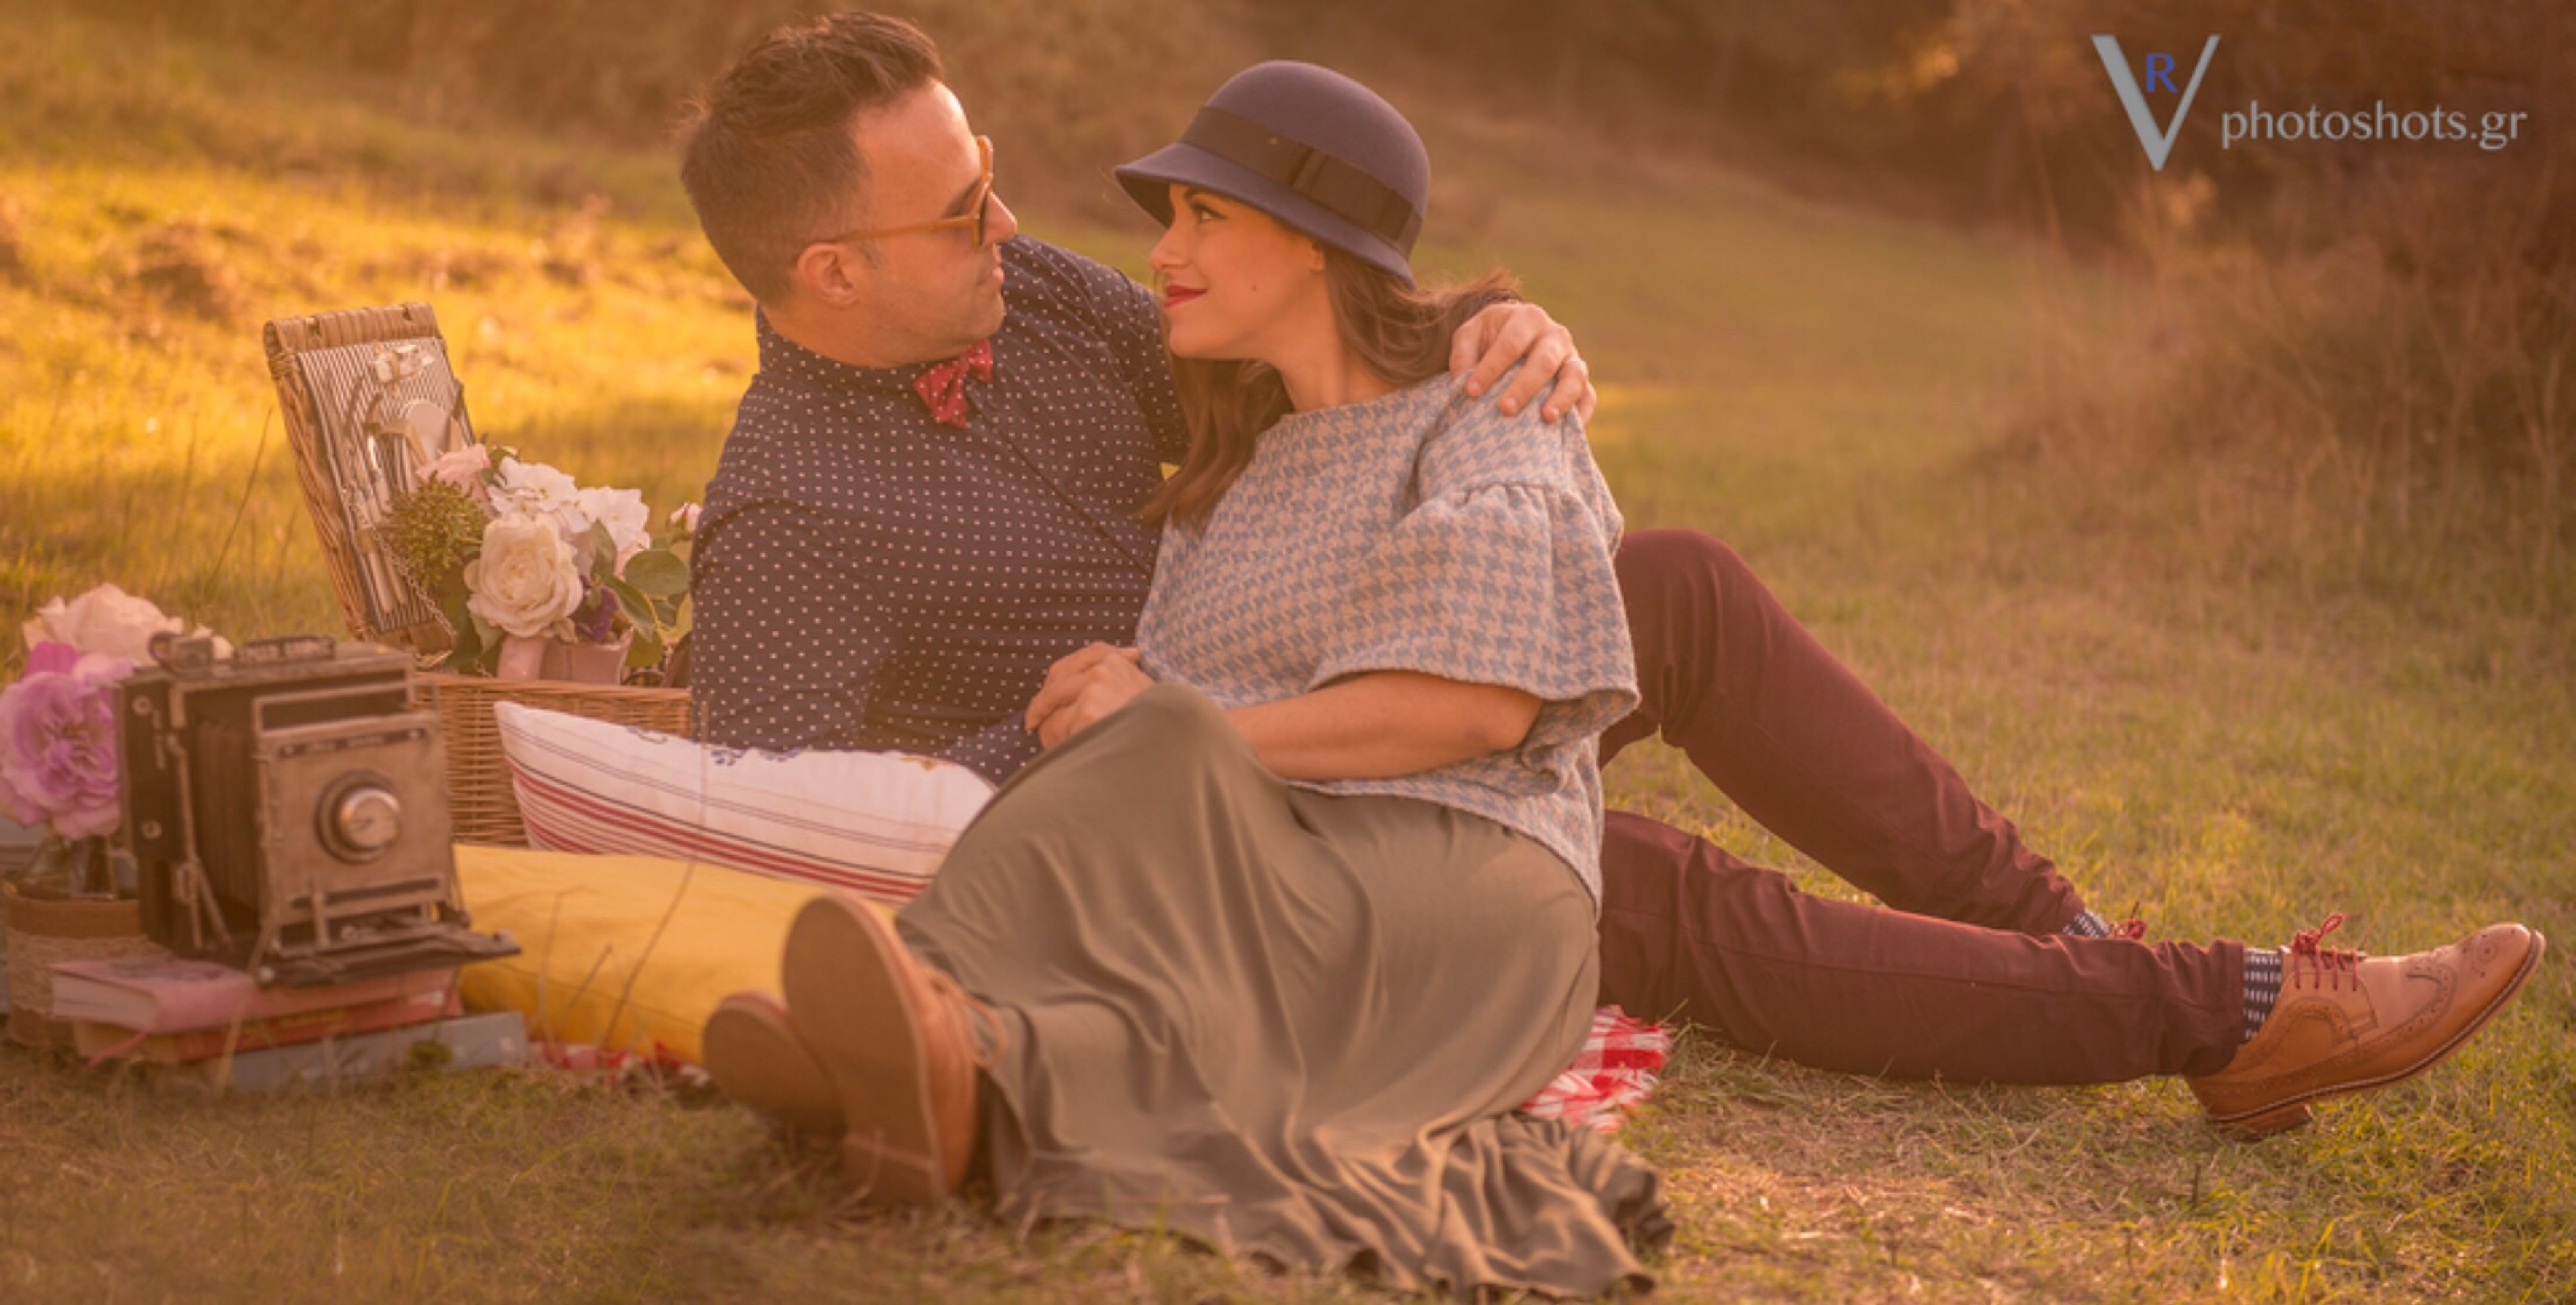 two people, togetherness, cultures, grass, hat, beautiful people, field, women, sitting, beauty, young adult, young women, adult, men, people, happiness, autumn, outdoors, females, portrait, smiling, cheerful, nature, beauty in nature, picnic, adults only